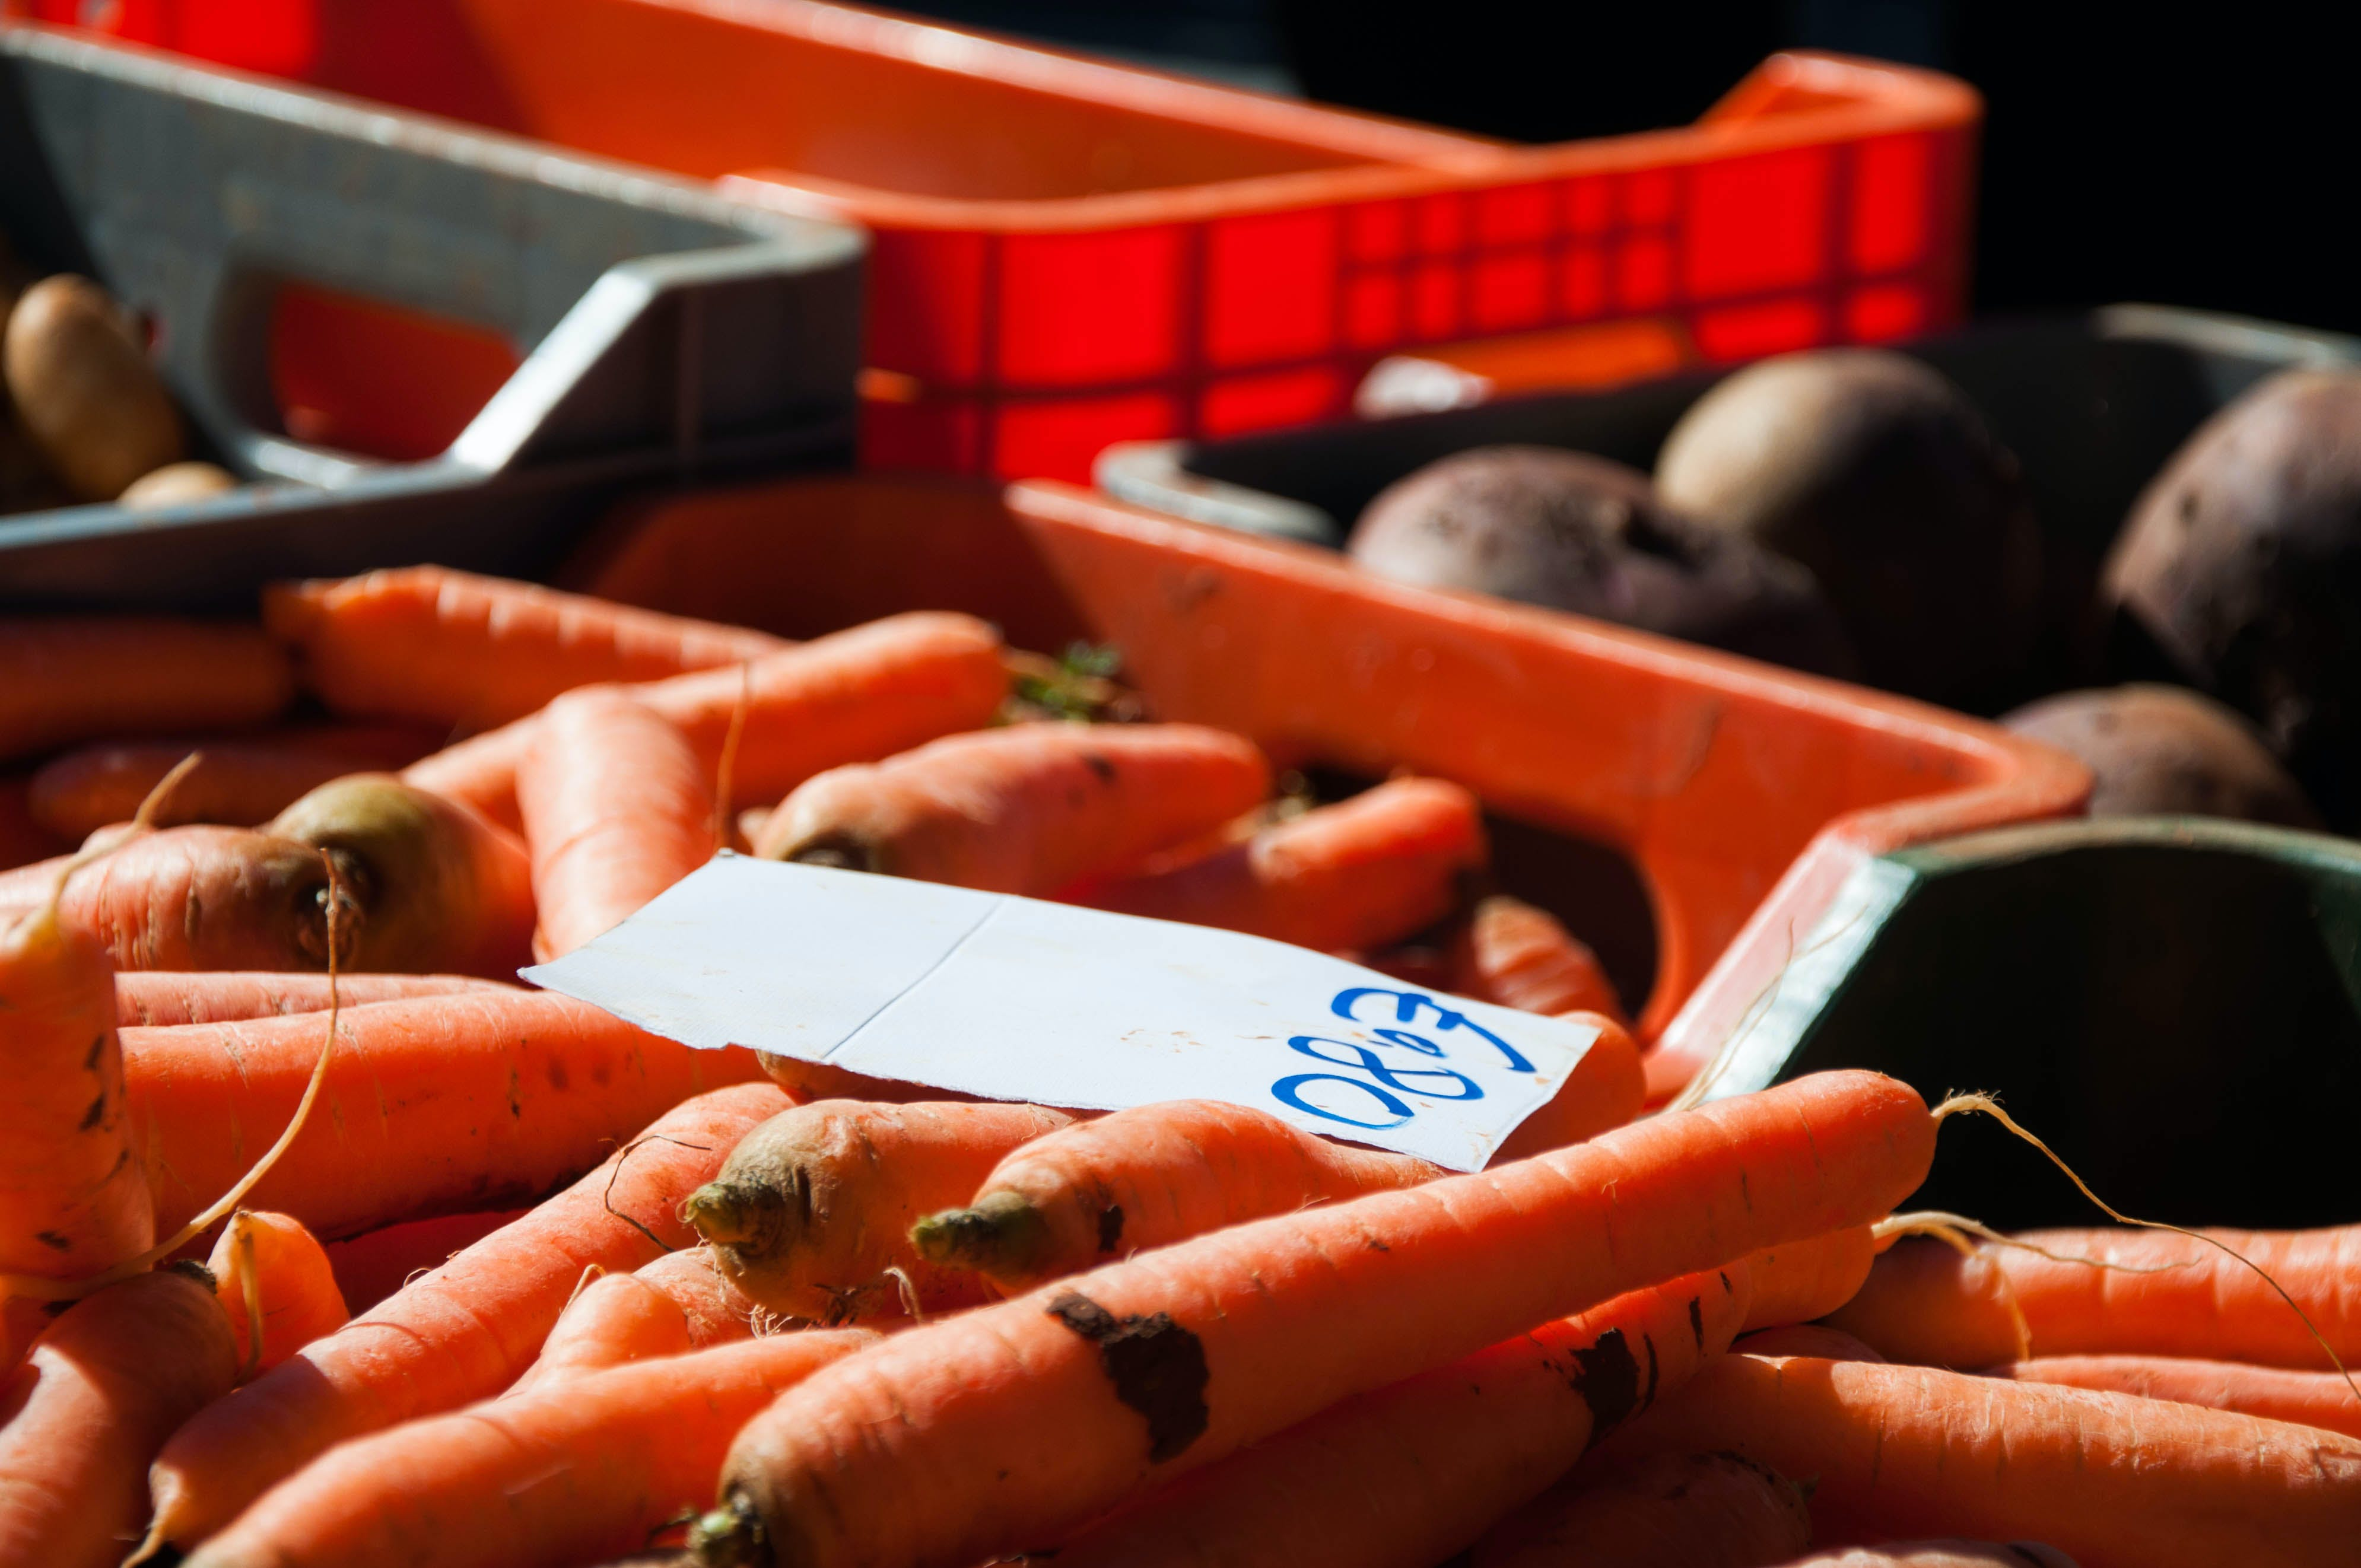 Free stock photo of carrots, farmers market, morning sun, orange